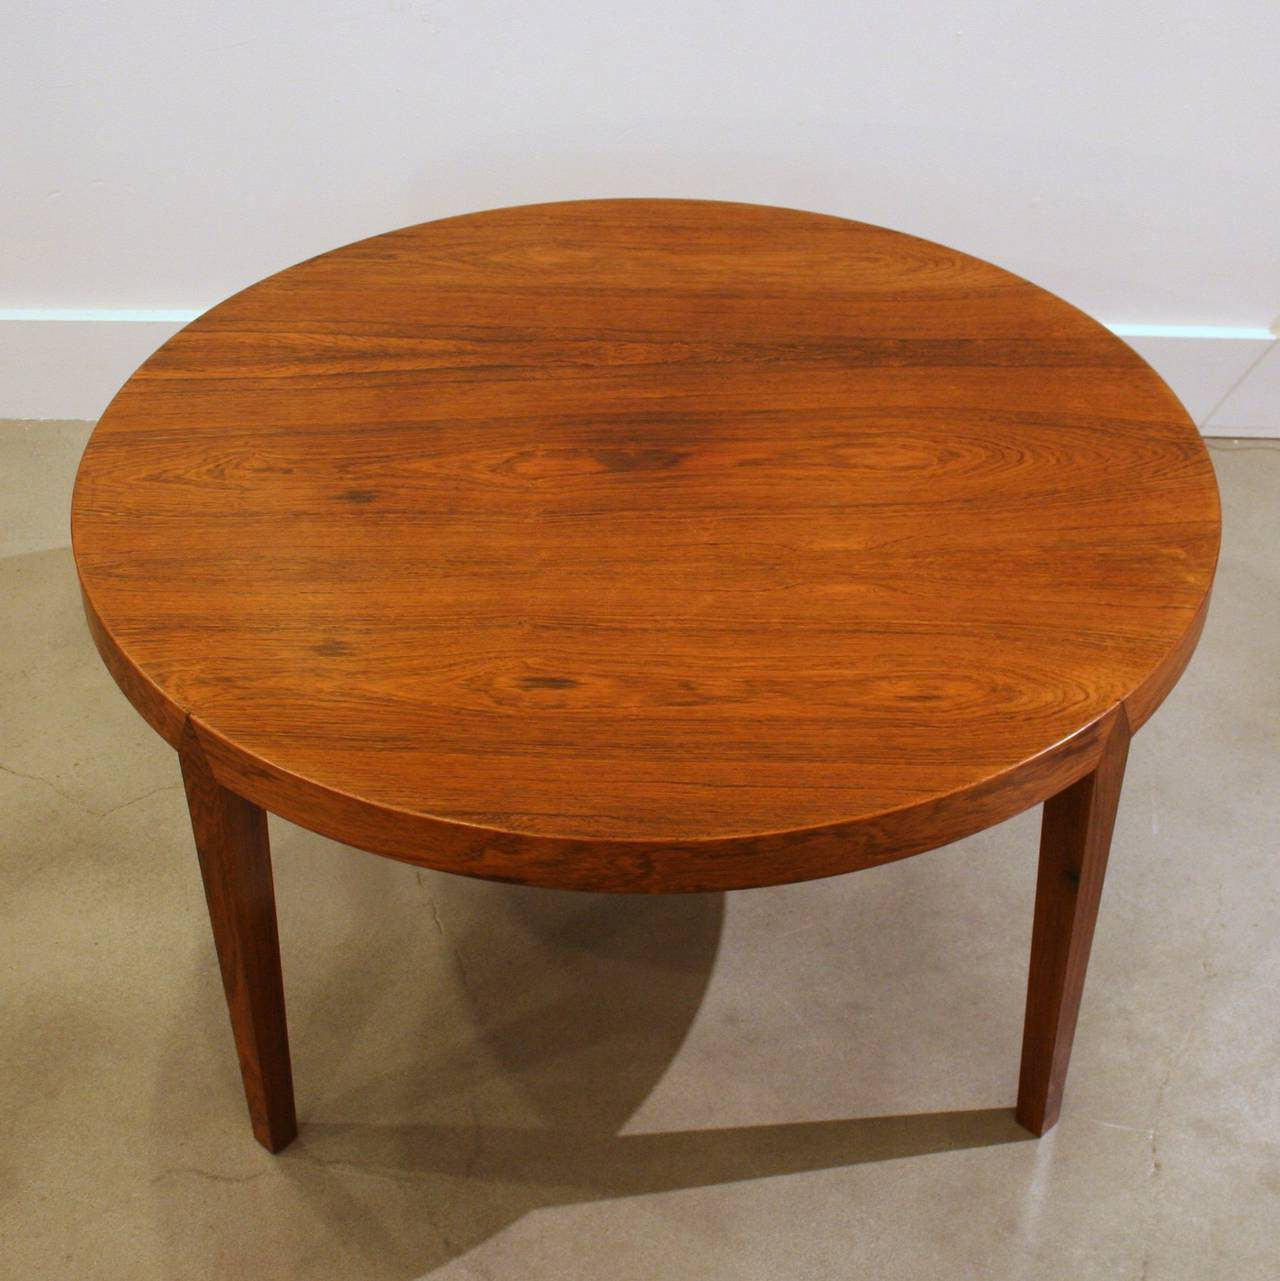 Most Recent Making Teak Round Coffee Table — New Home Design For Round Teak Coffee Tables (View 9 of 20)